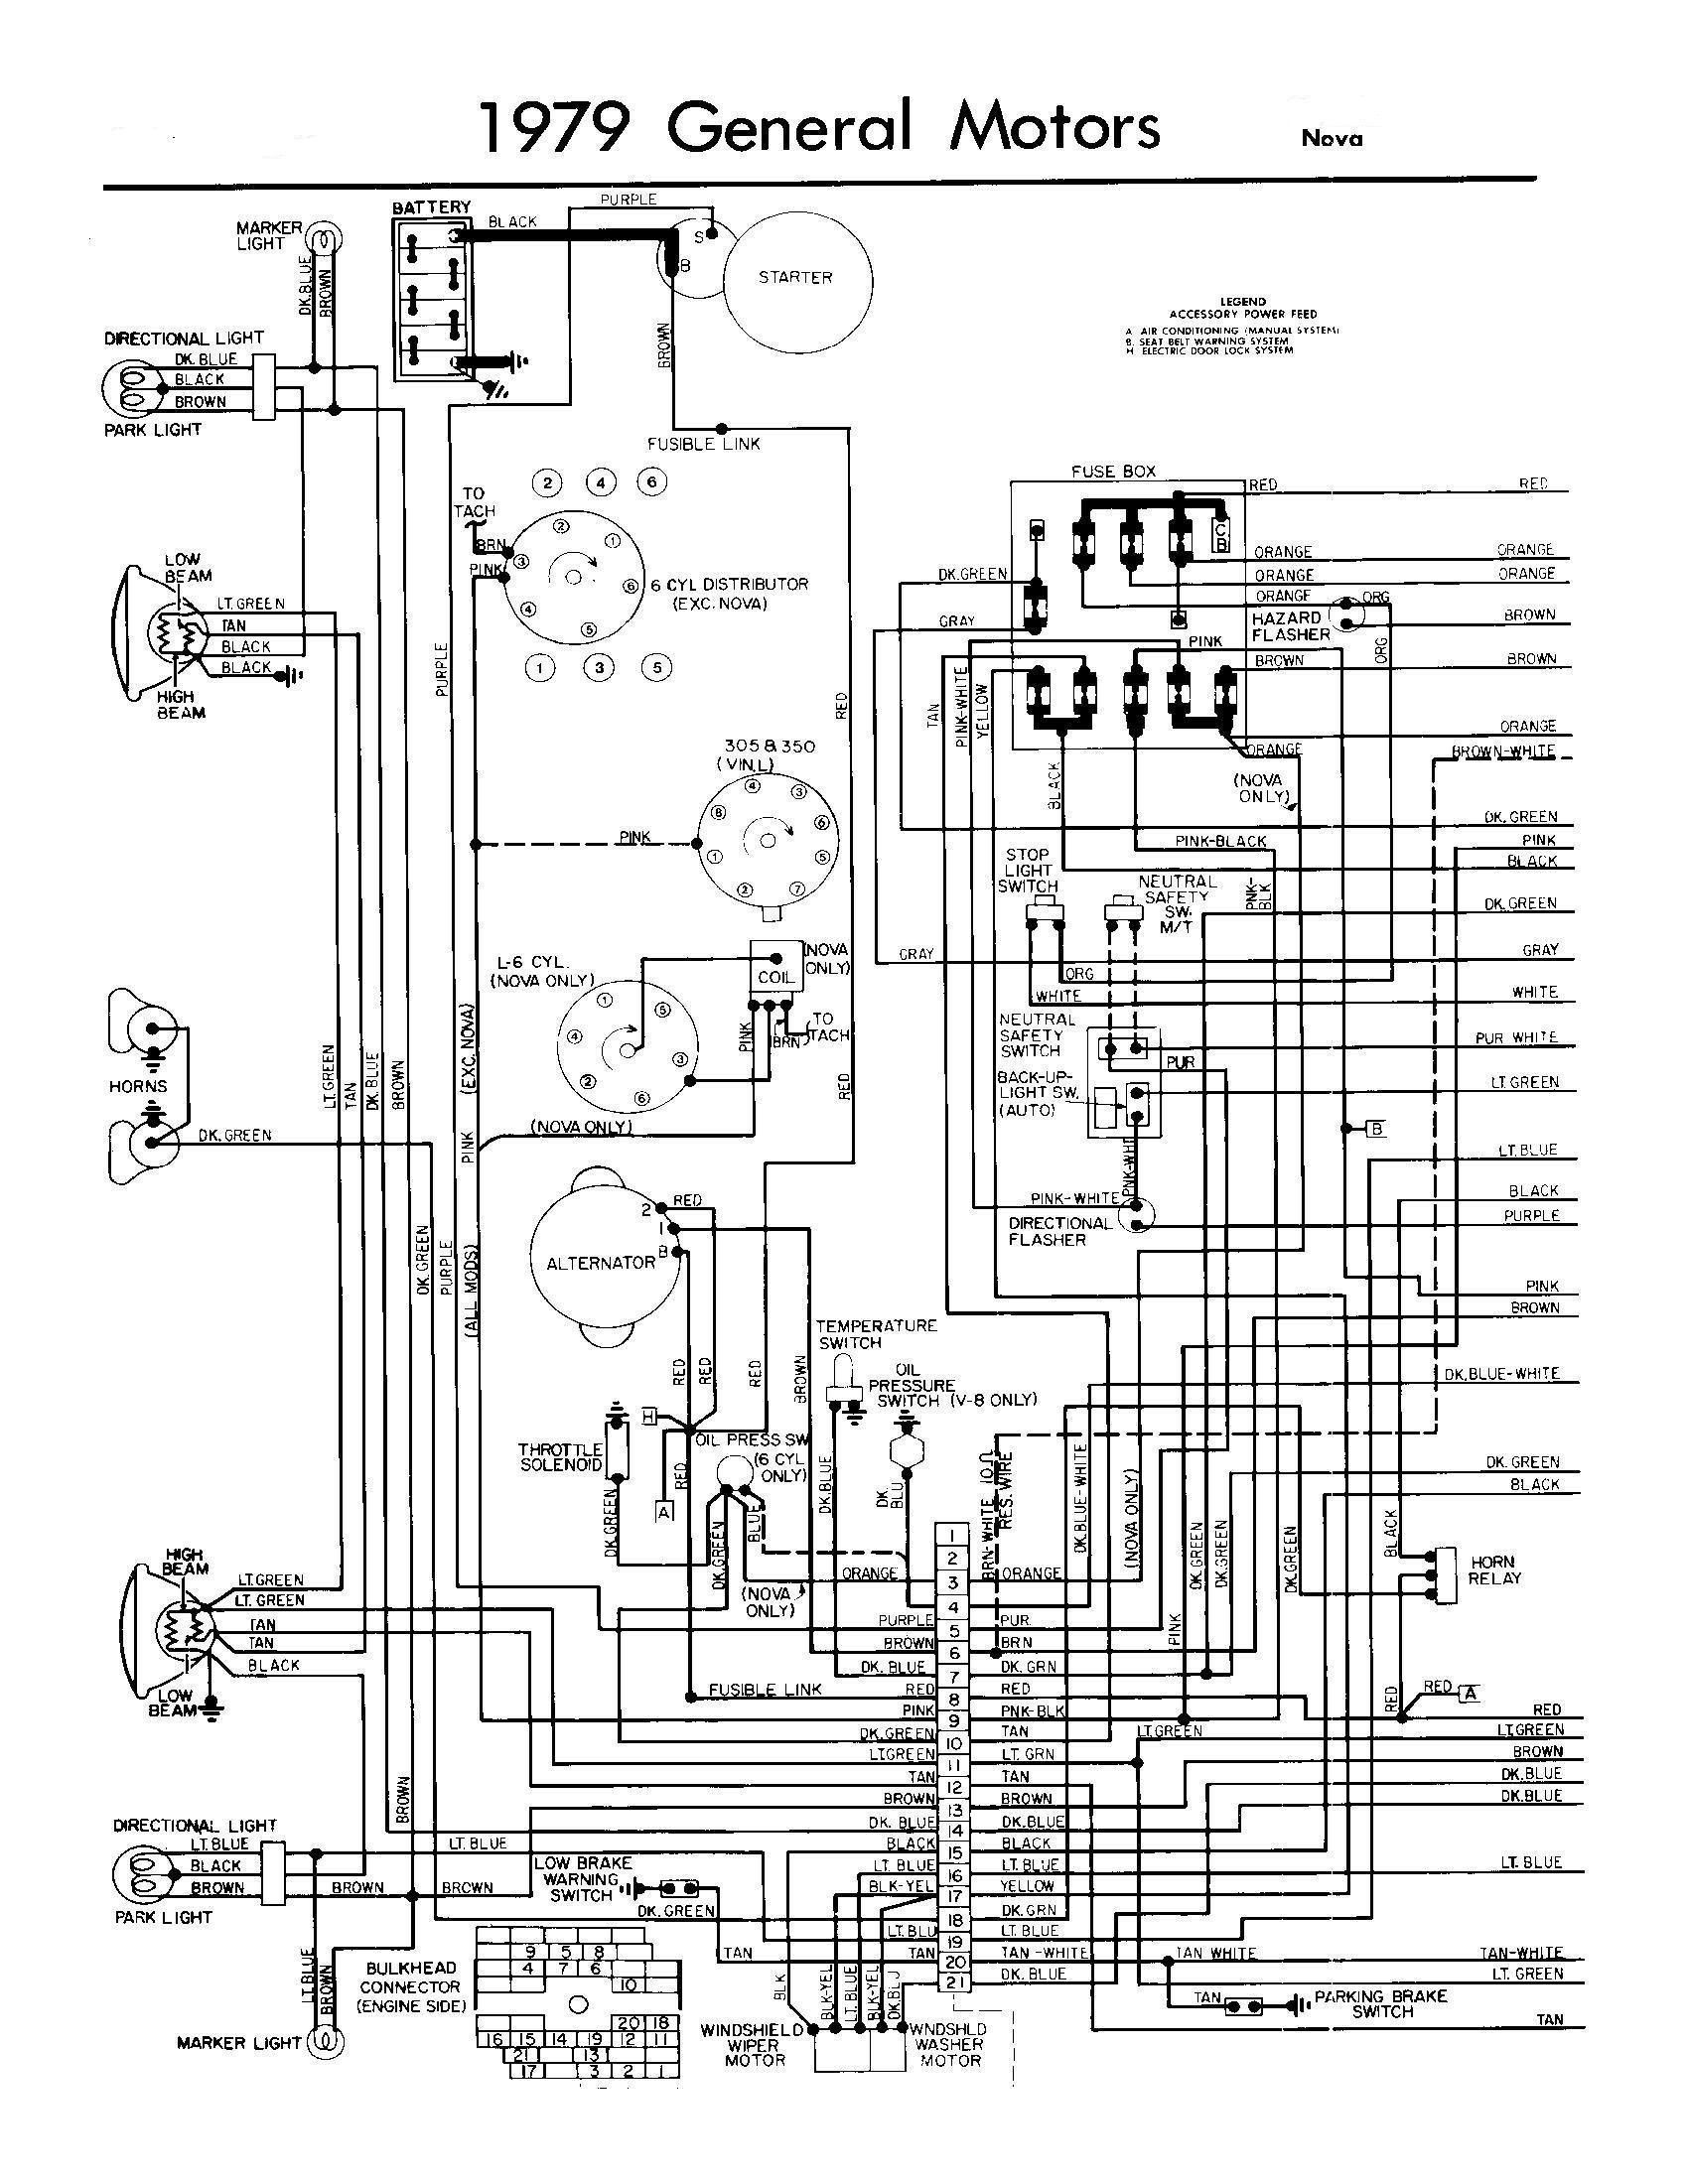 Unique 1984 Chevy C10 Wiring Diagram In 2020 Chevy Trucks 1979 Chevy Truck 79 Chevy Truck